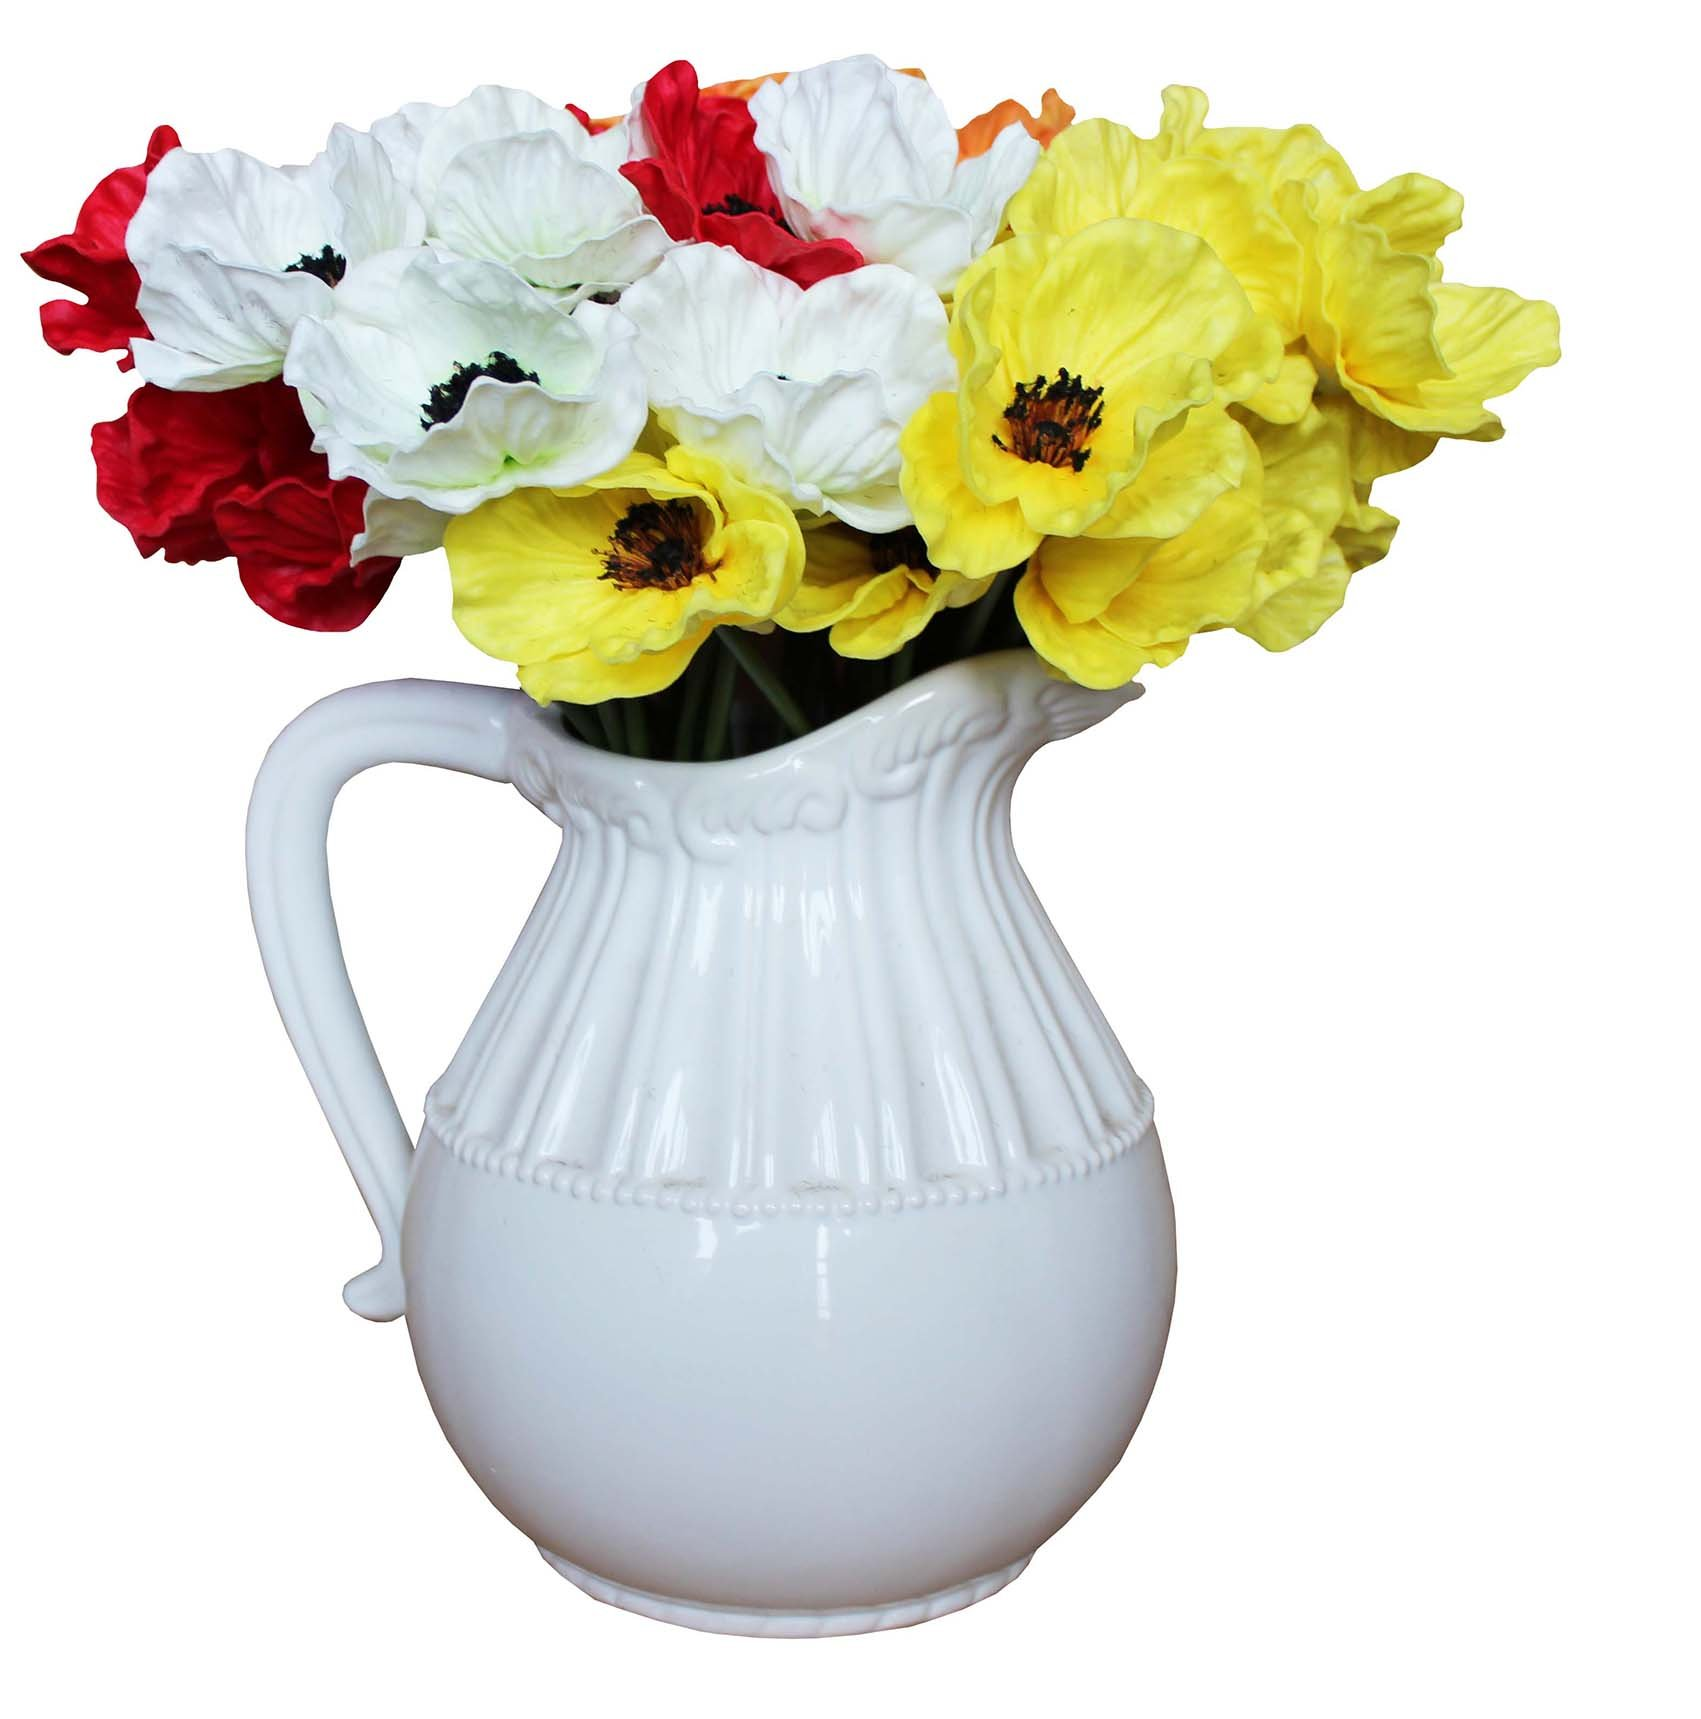 En-Ge-10-Stems-Mini-Artificial-Poppies-Real-Touch-Fake-Latex-Flowers-for-Bridal-Wedding-Bouquet-Home-Kitchen-Desktop-Party-Decor